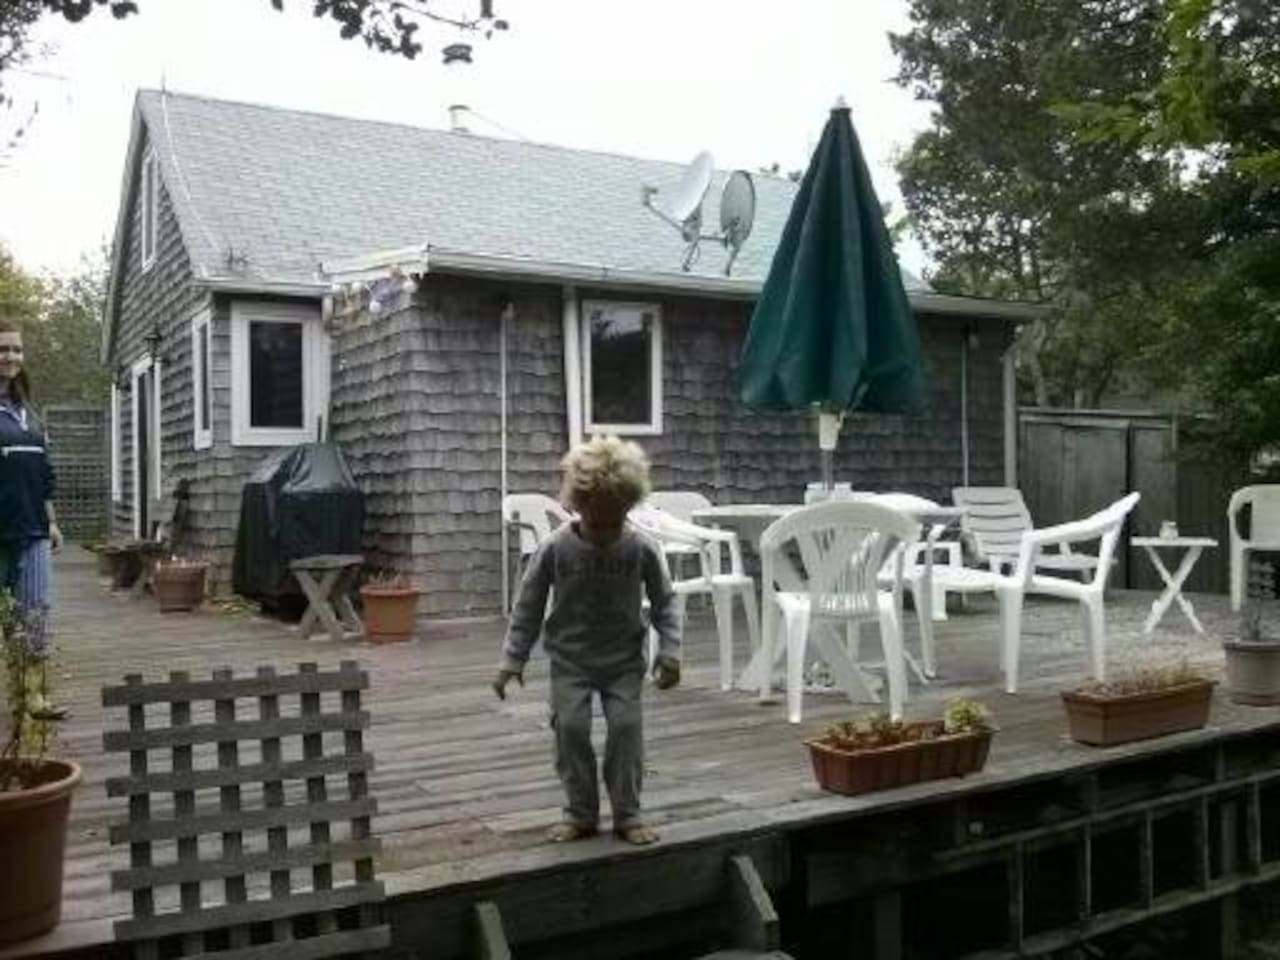 Big deck in the back, child not included!